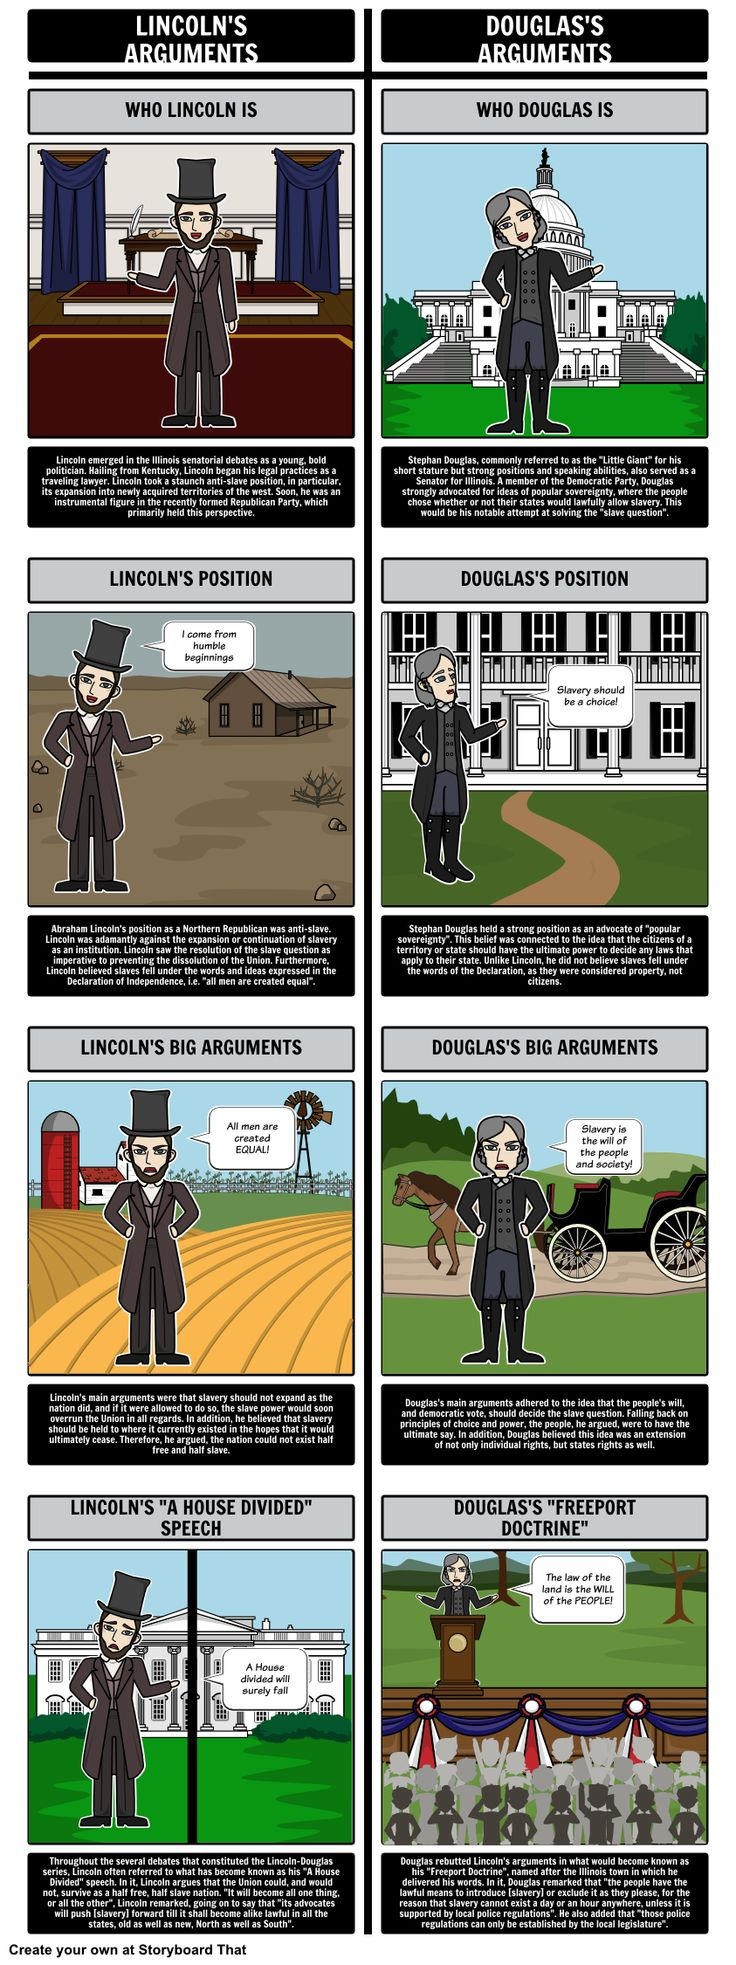 1850s America: A Precursor to the American Civil War - T-Chart: As part of our Pre-Civil War history guide, students can create storyboards or graphic organizers to display the Lincoln-Douglas Debates.